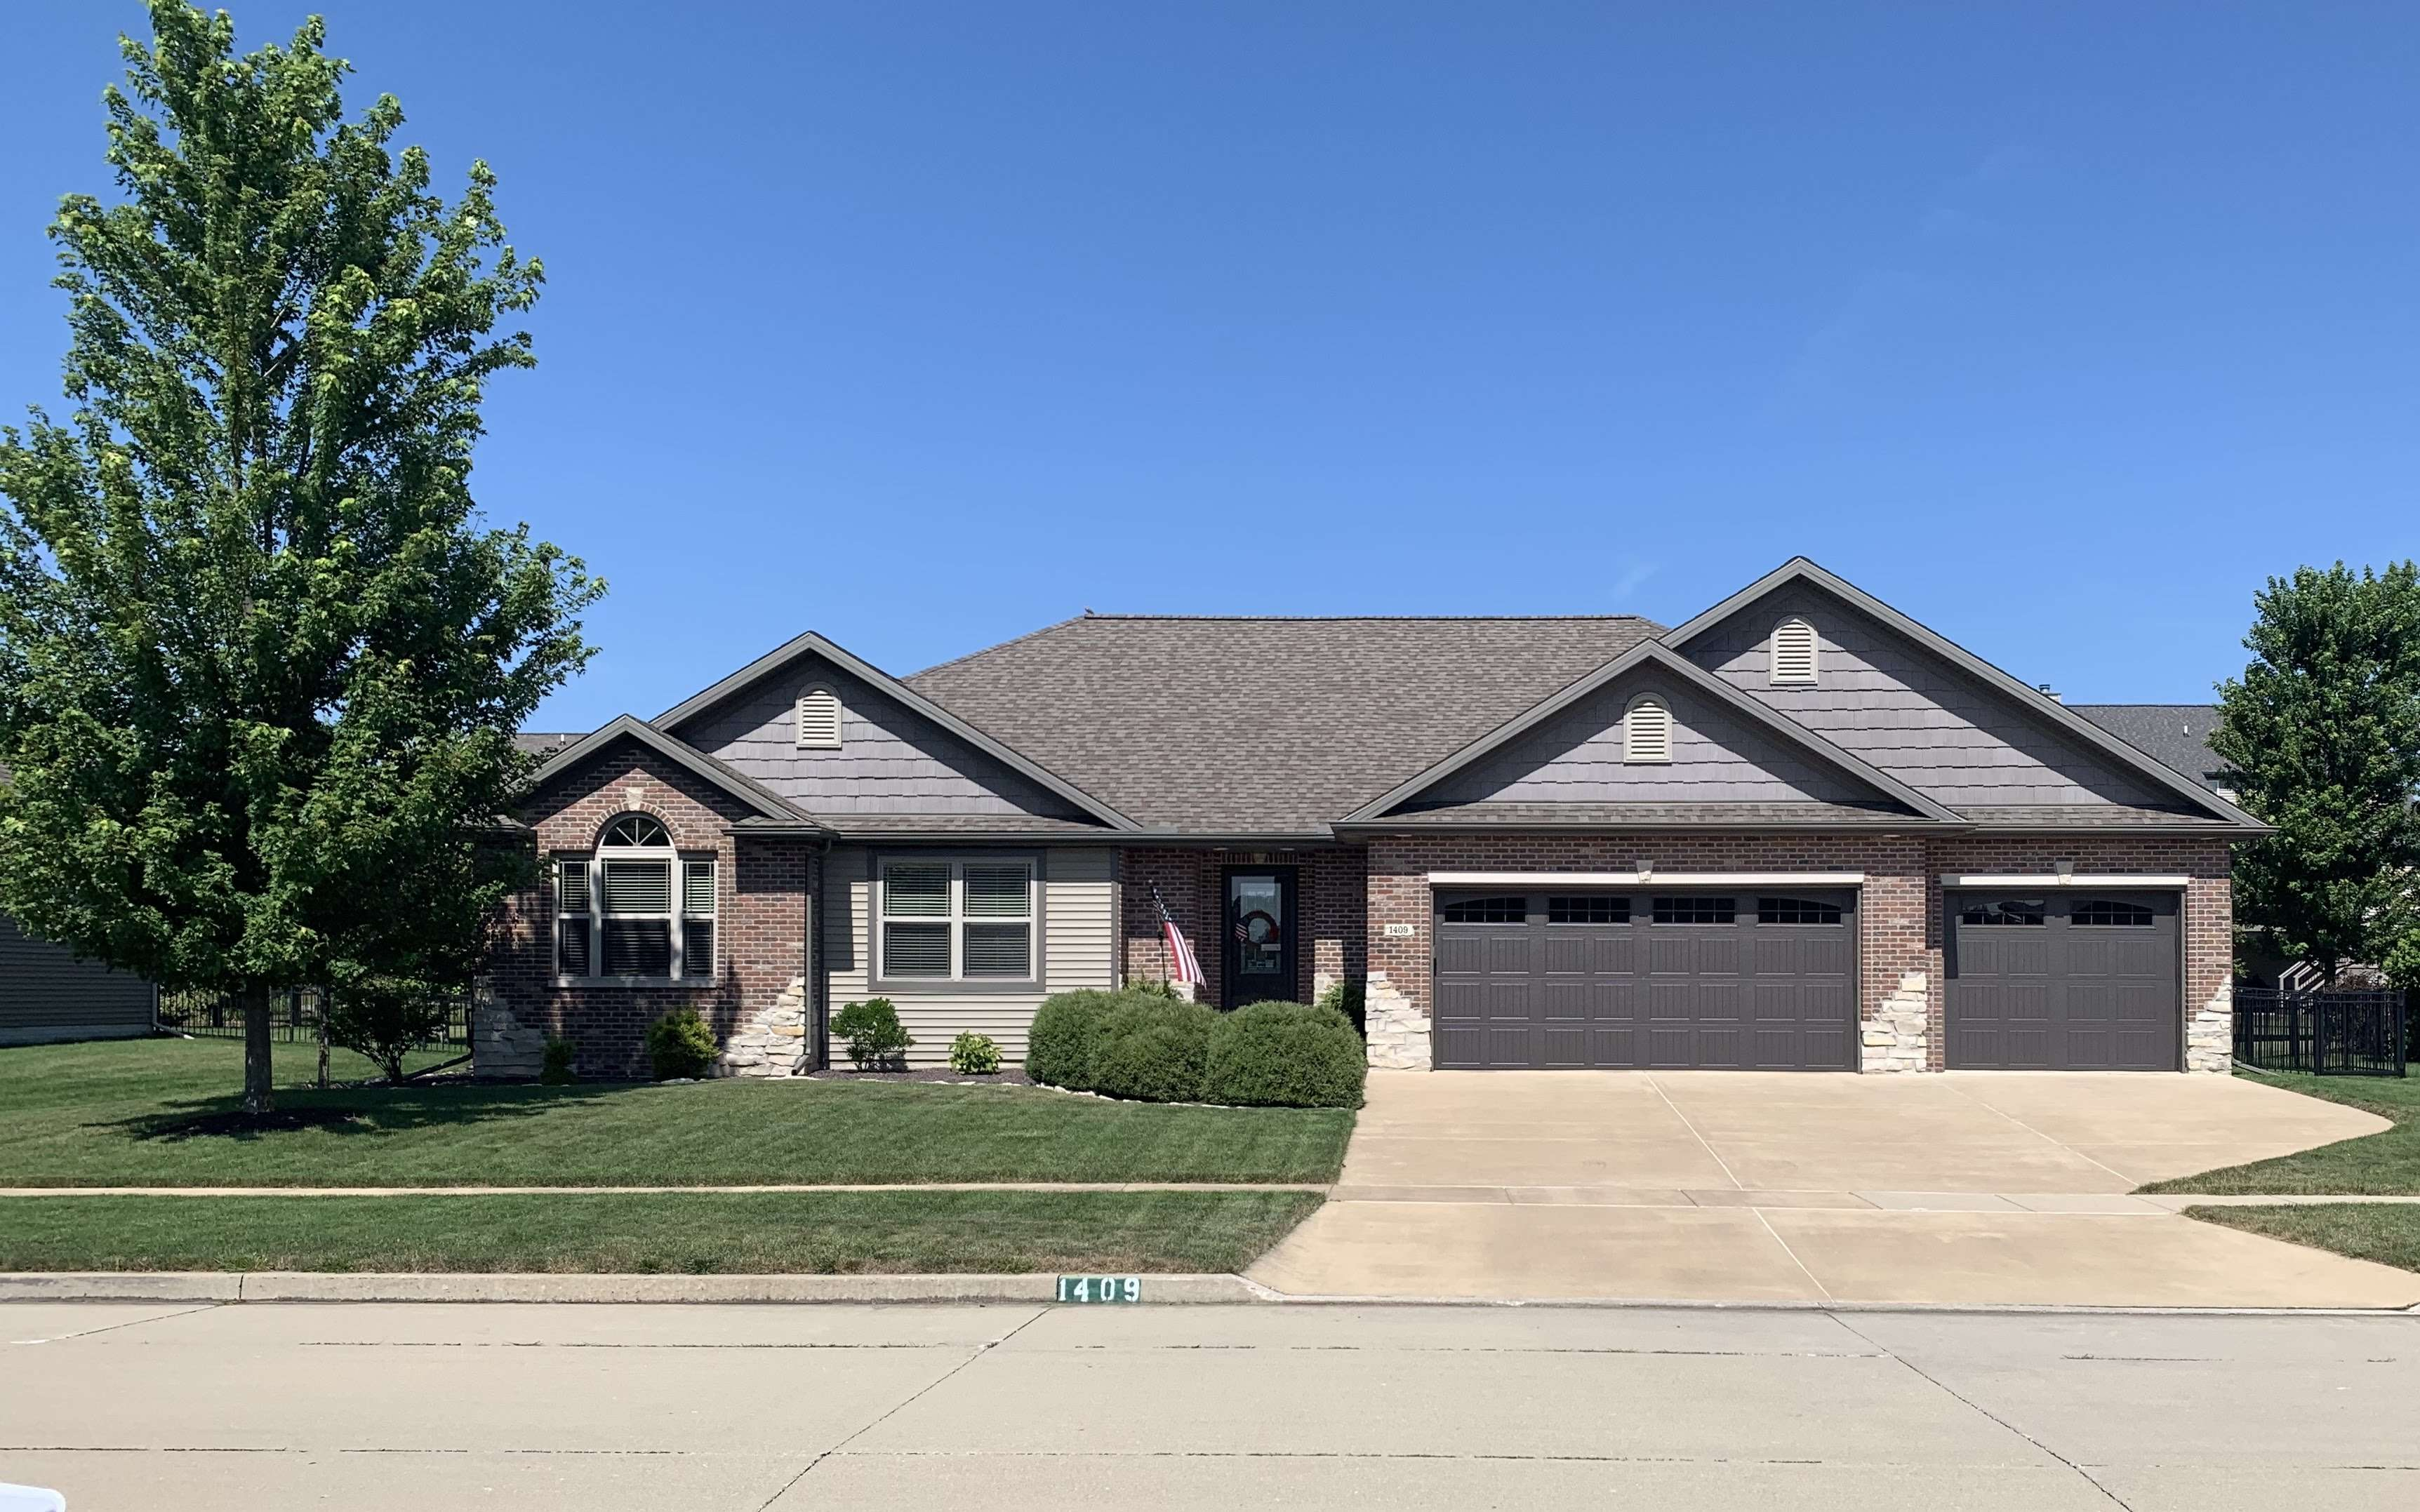 157 Homes Bloomington, Illinois Homes For Sale By Owner ...